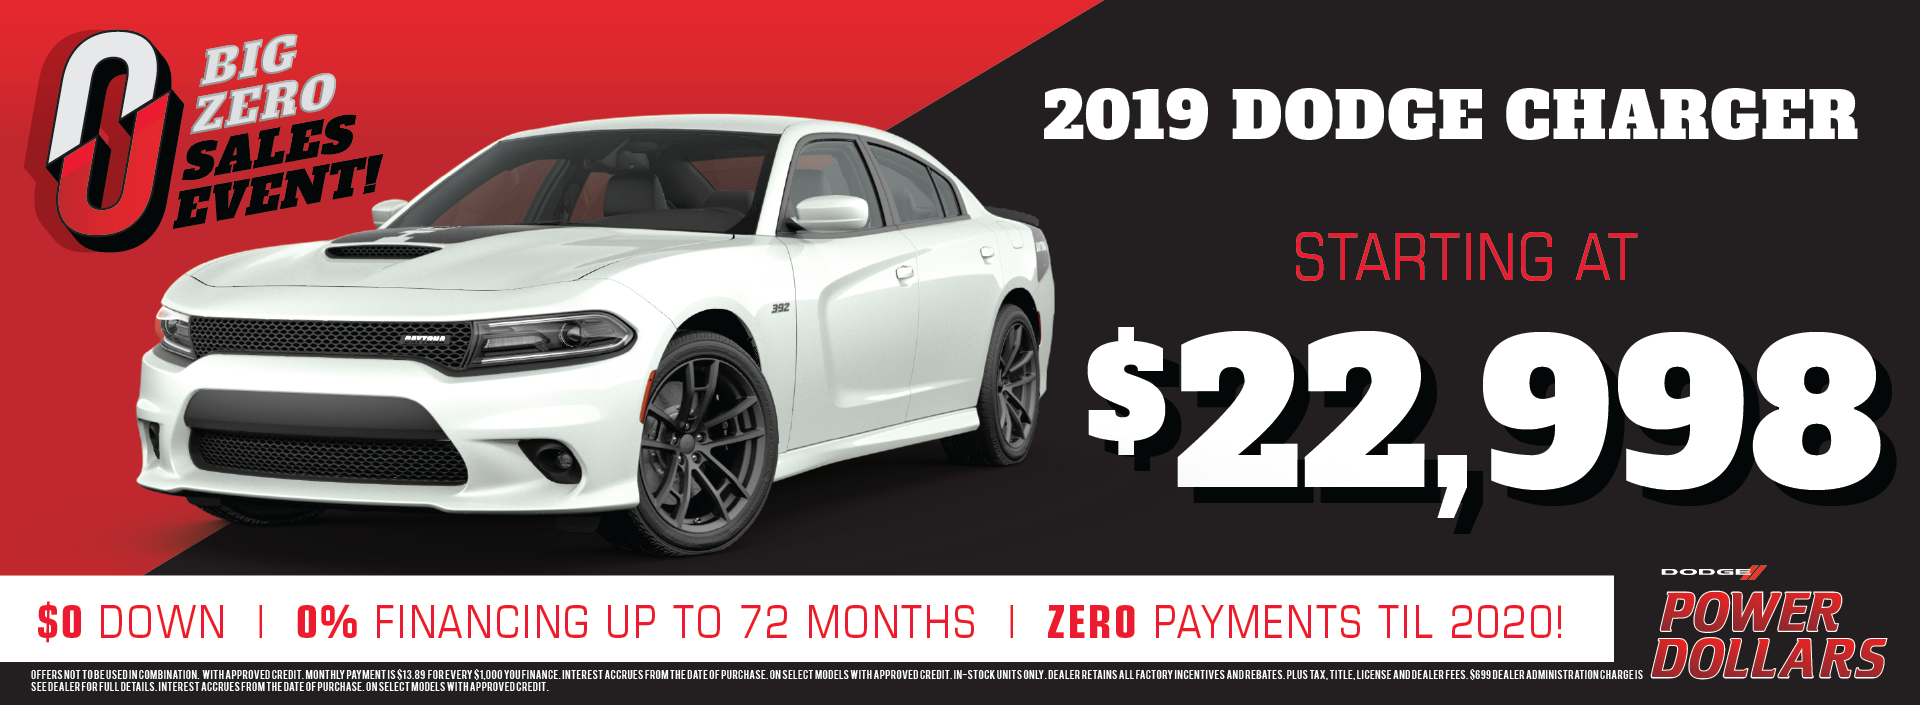 2019 Dodge Charger discount!